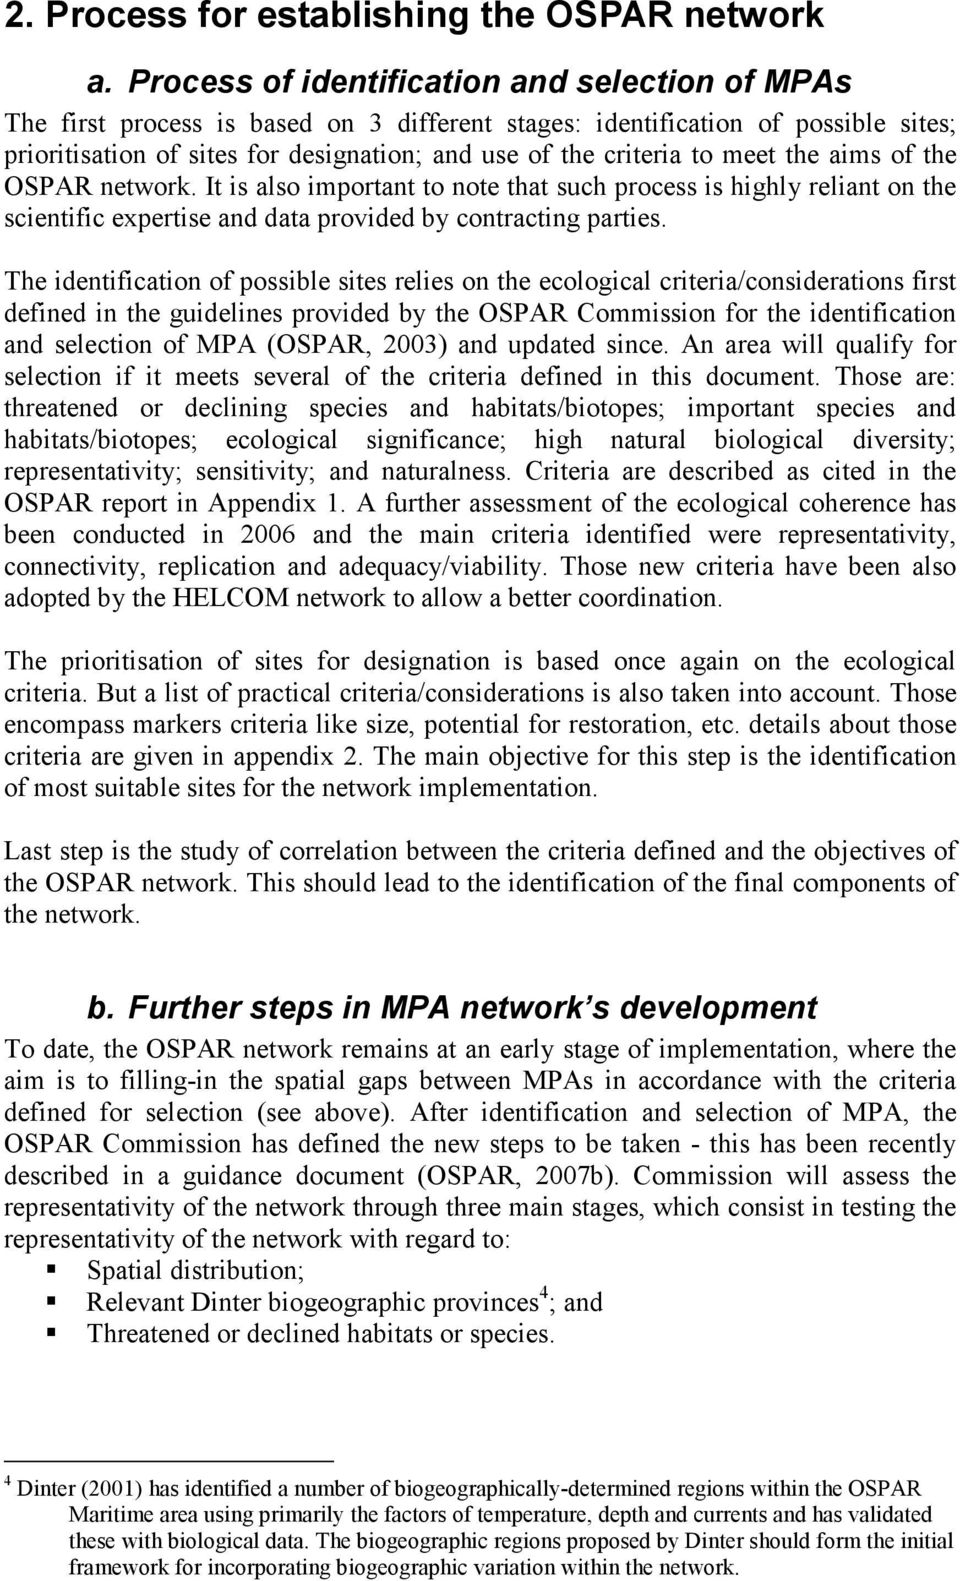 meet the aims of the OSPAR network. It is also important to note that such process is highly reliant on the scientific expertise and data provided by contracting parties.